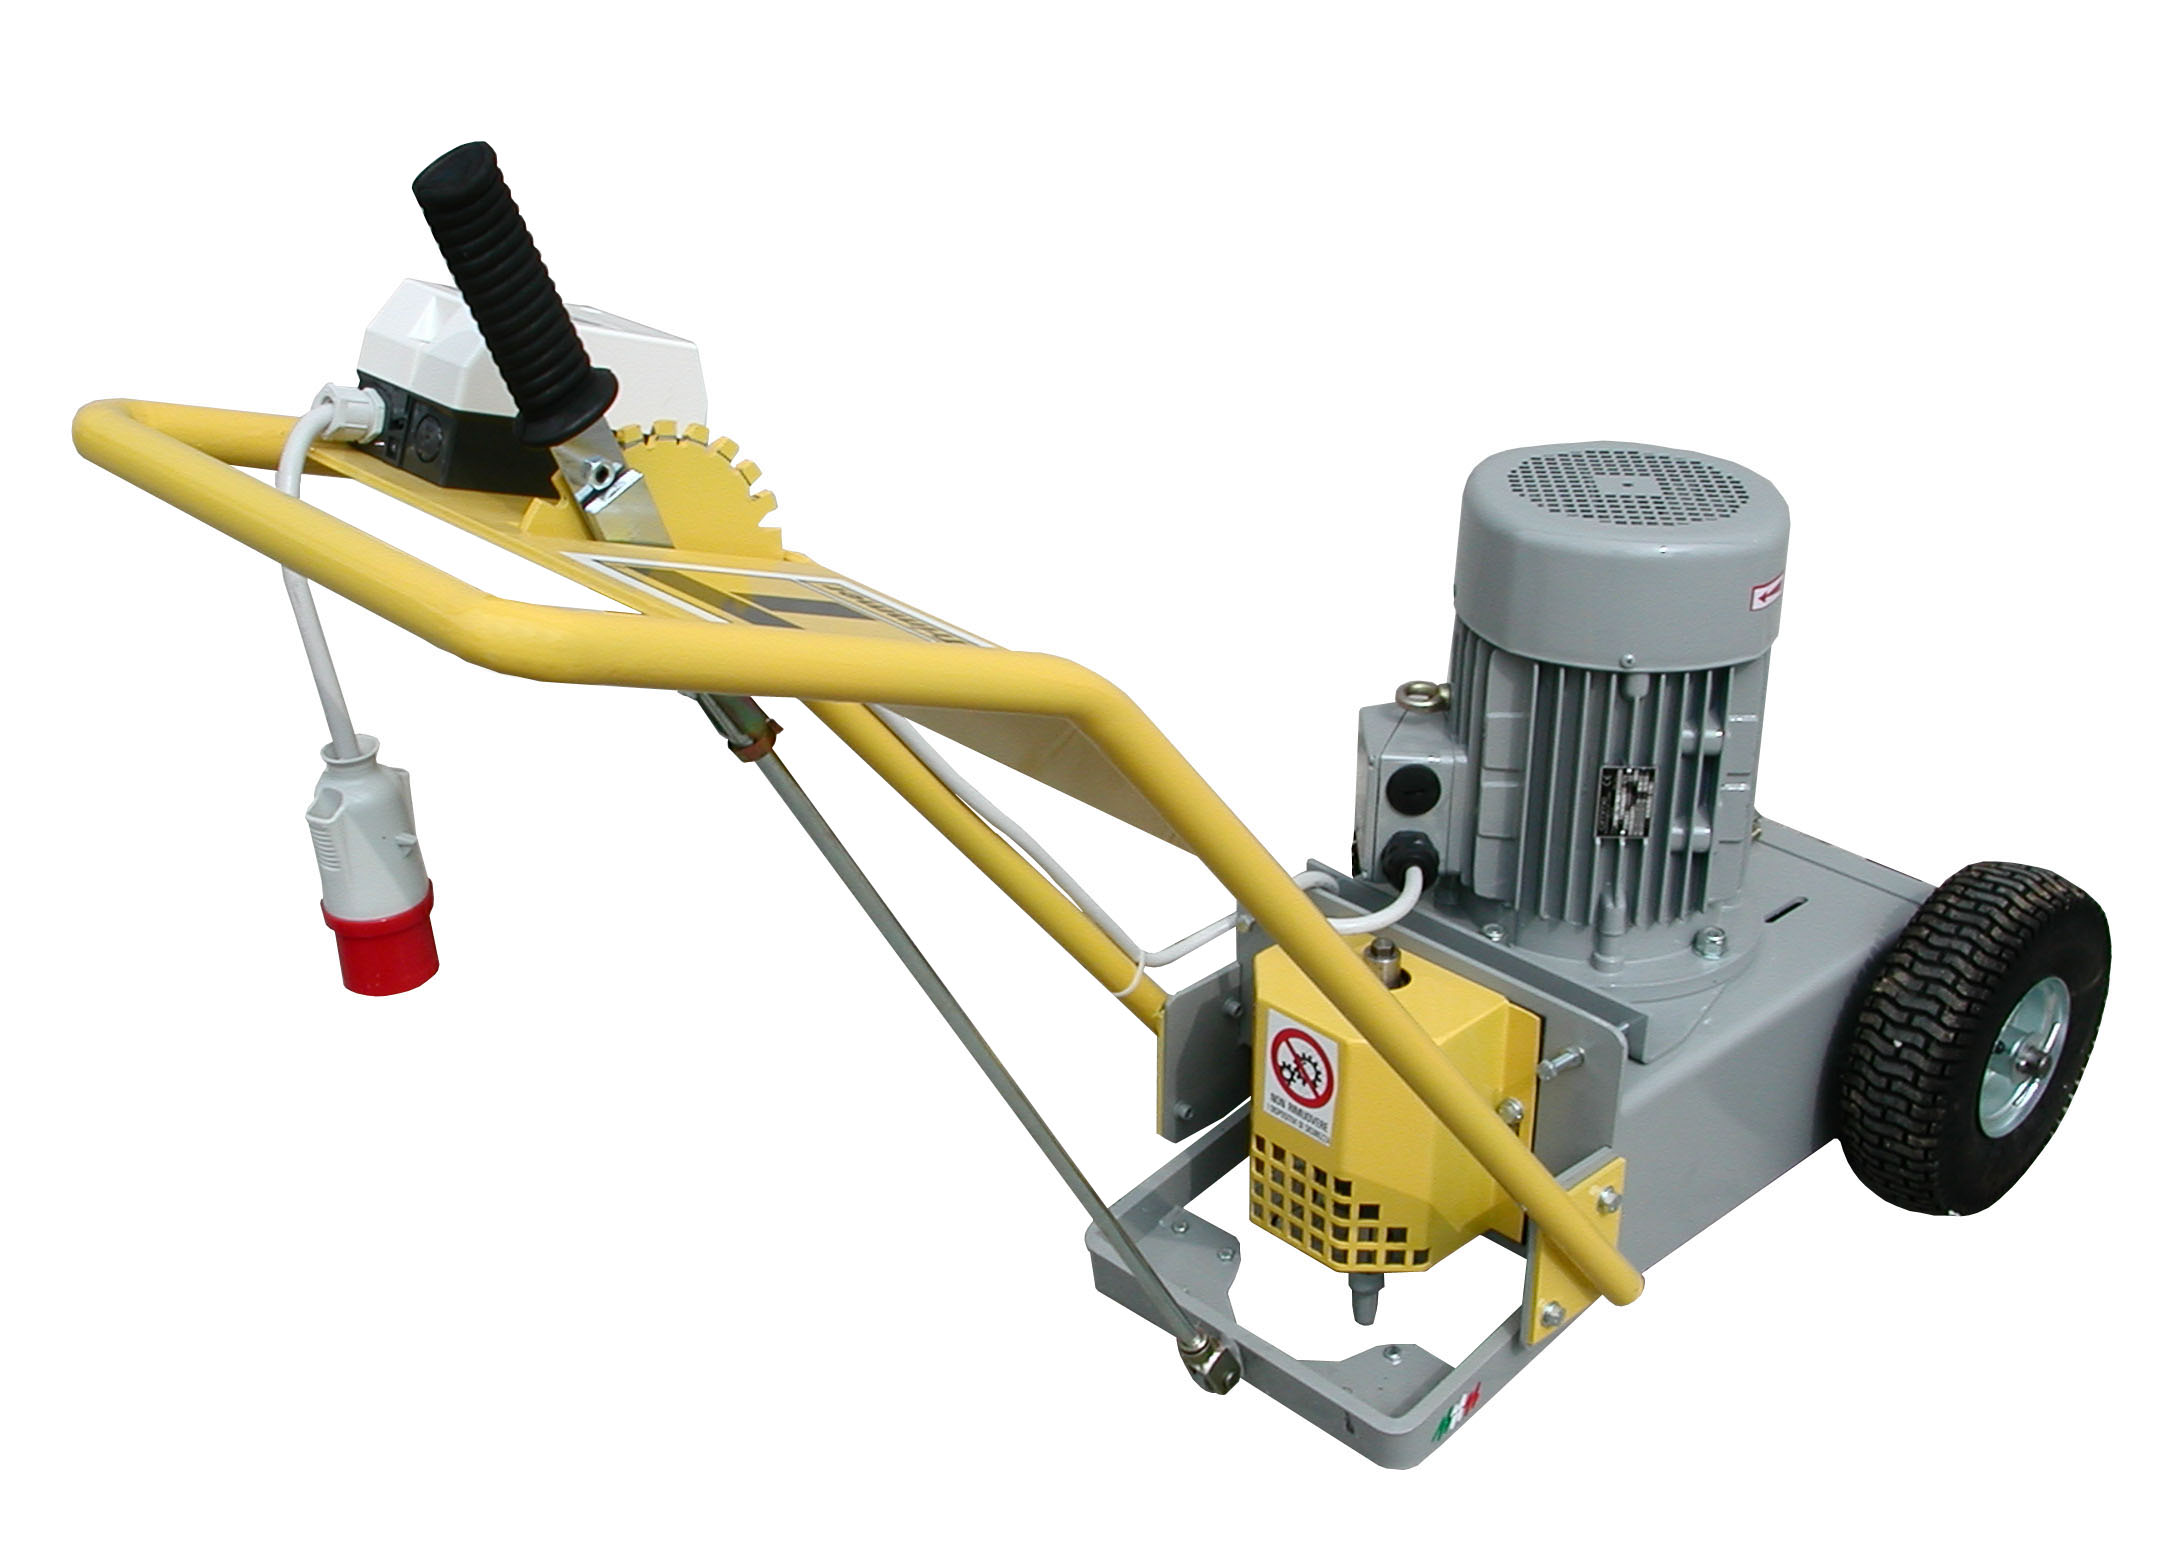 - CRACK REPAIR EQUIPMENT TRIMMROUTER E ELECTRIC